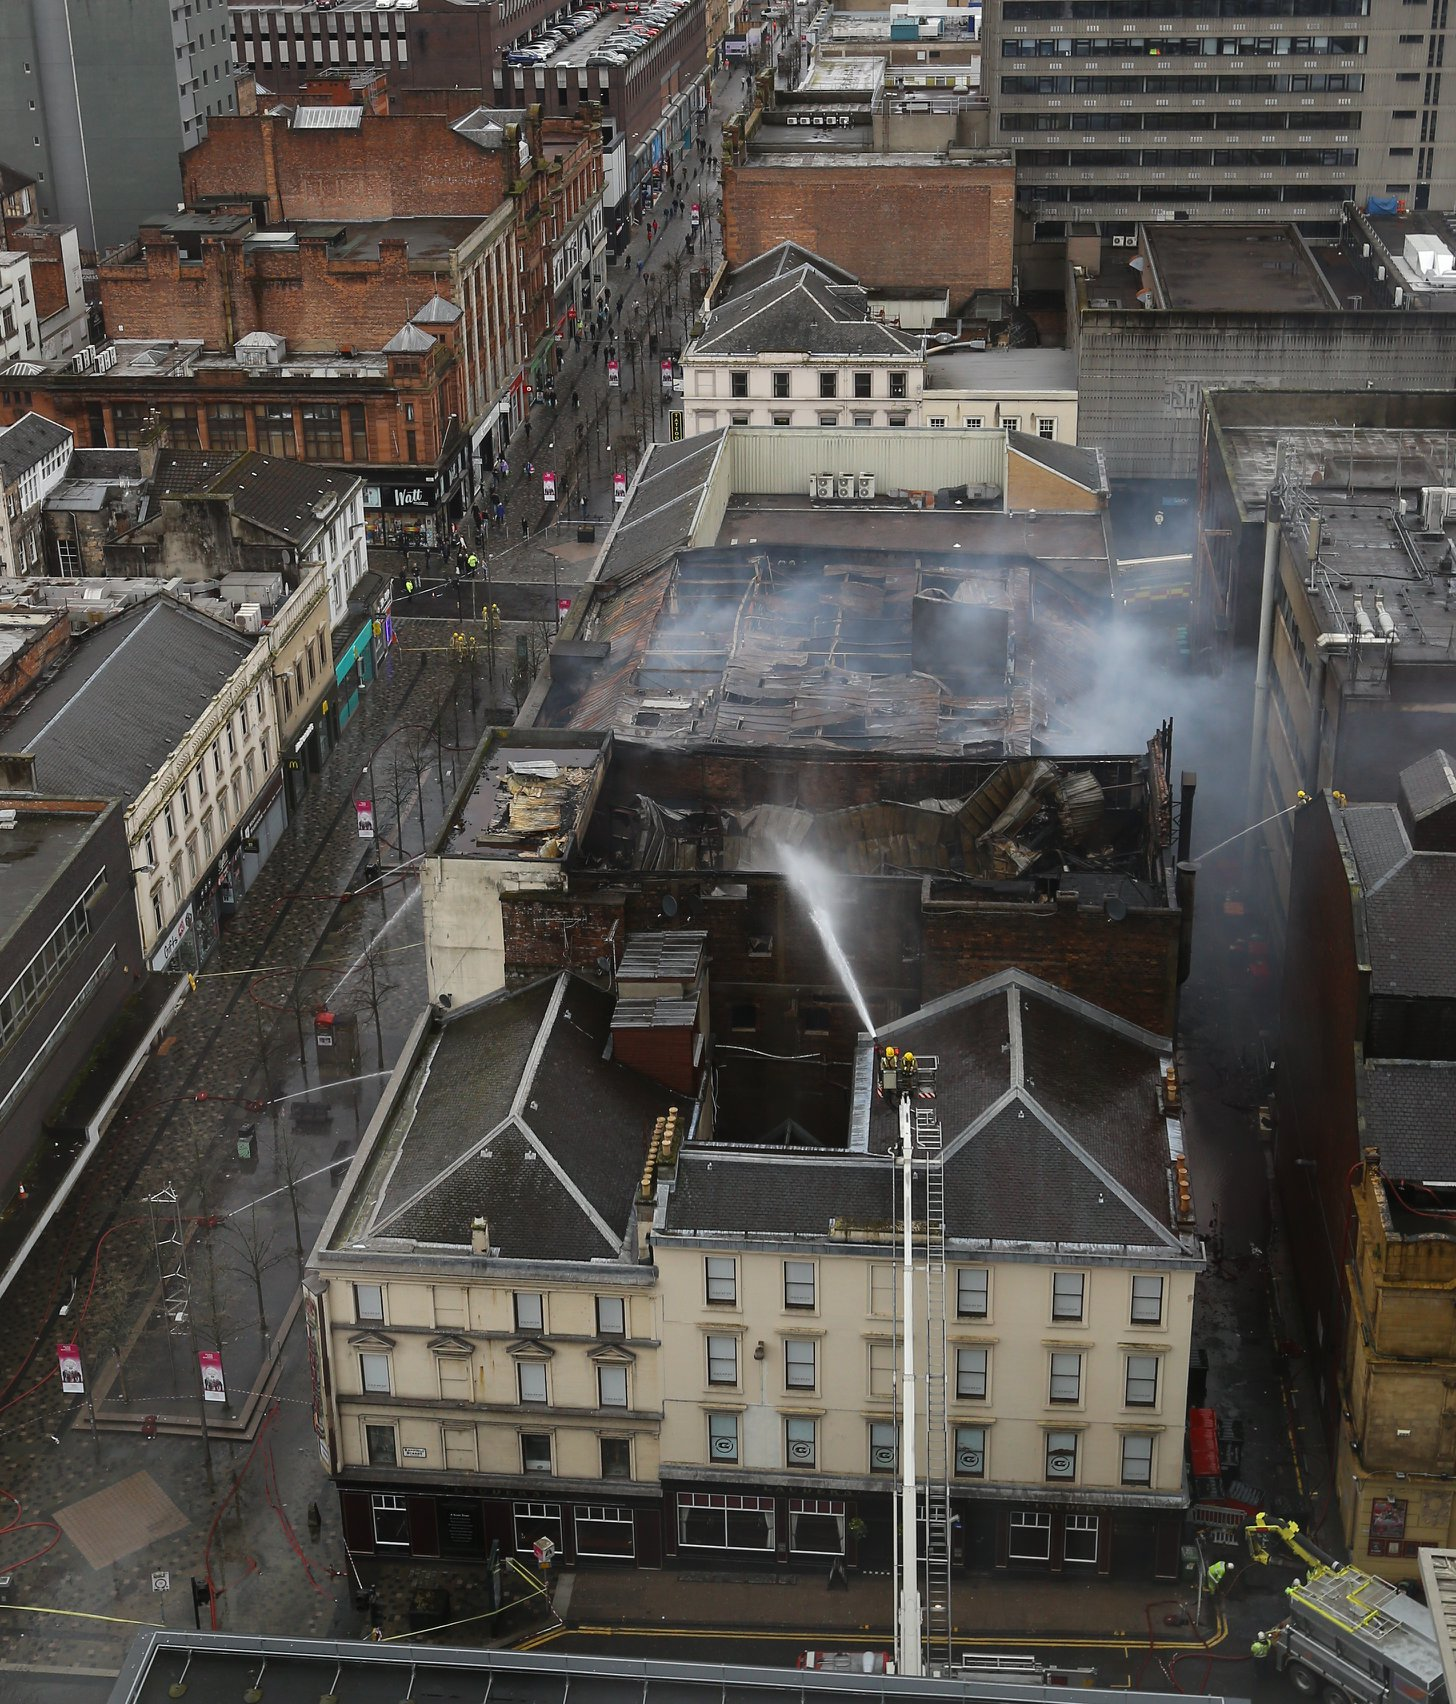 Firefighters remain at scene of major blaze in Glasgow city centre